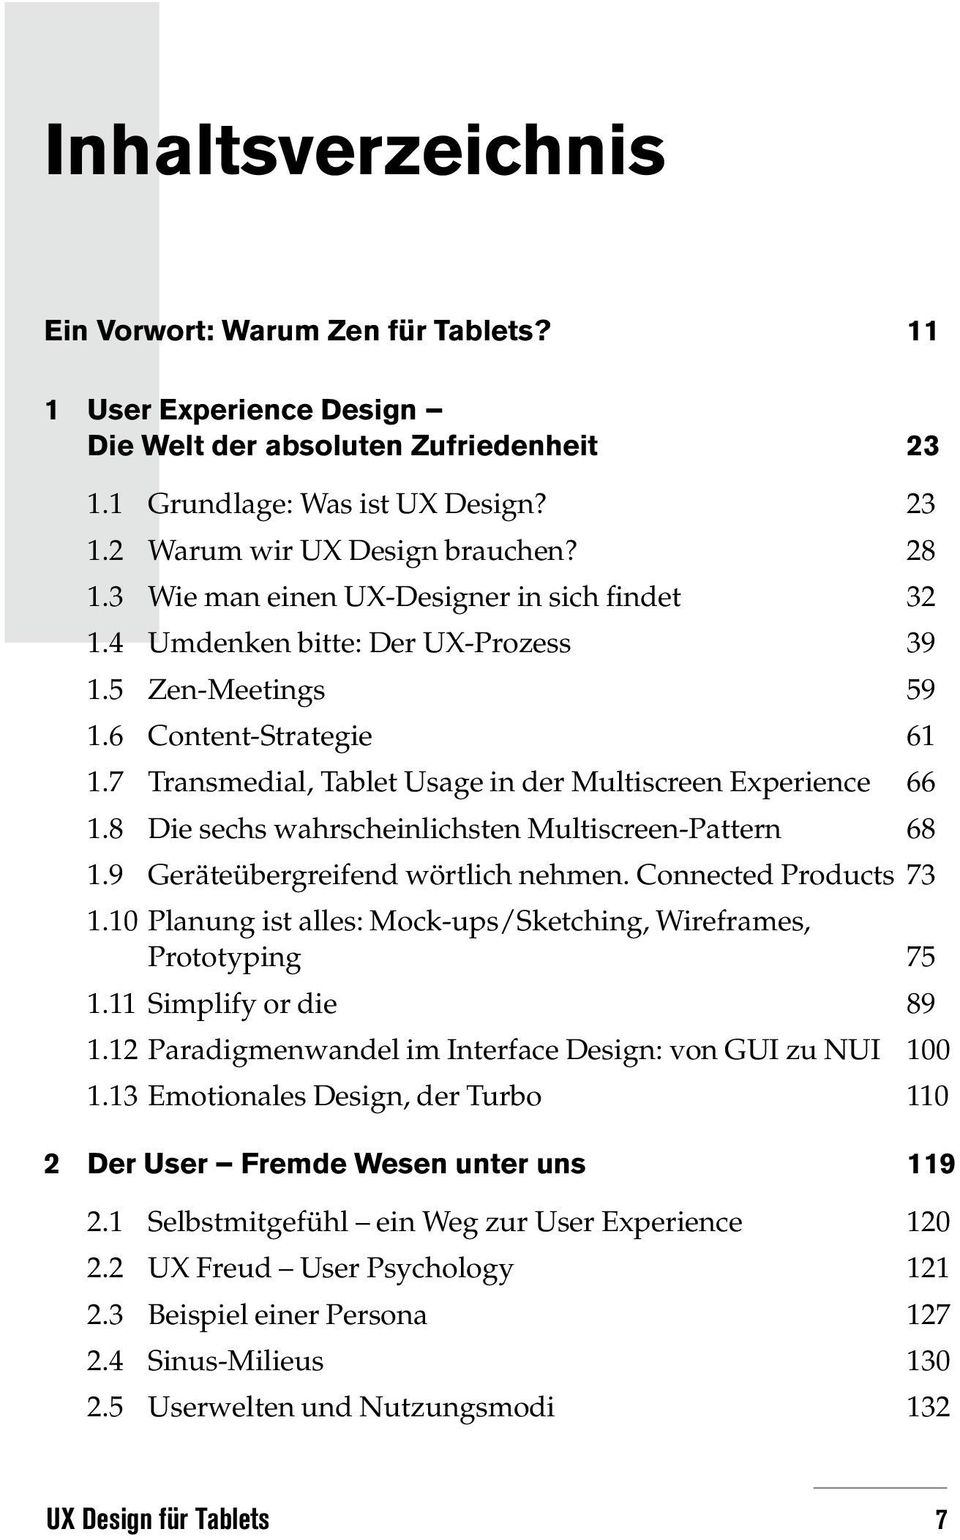 8 Die sechs wahrscheinlichsten Multiscreen-Pattern 68 1.9 Geräteübergreifend wörtlich nehmen. Connected Products 73 1.10 Planung ist alles: Mock-ups/Sketching, Wireframes, Prototyping 75 1.